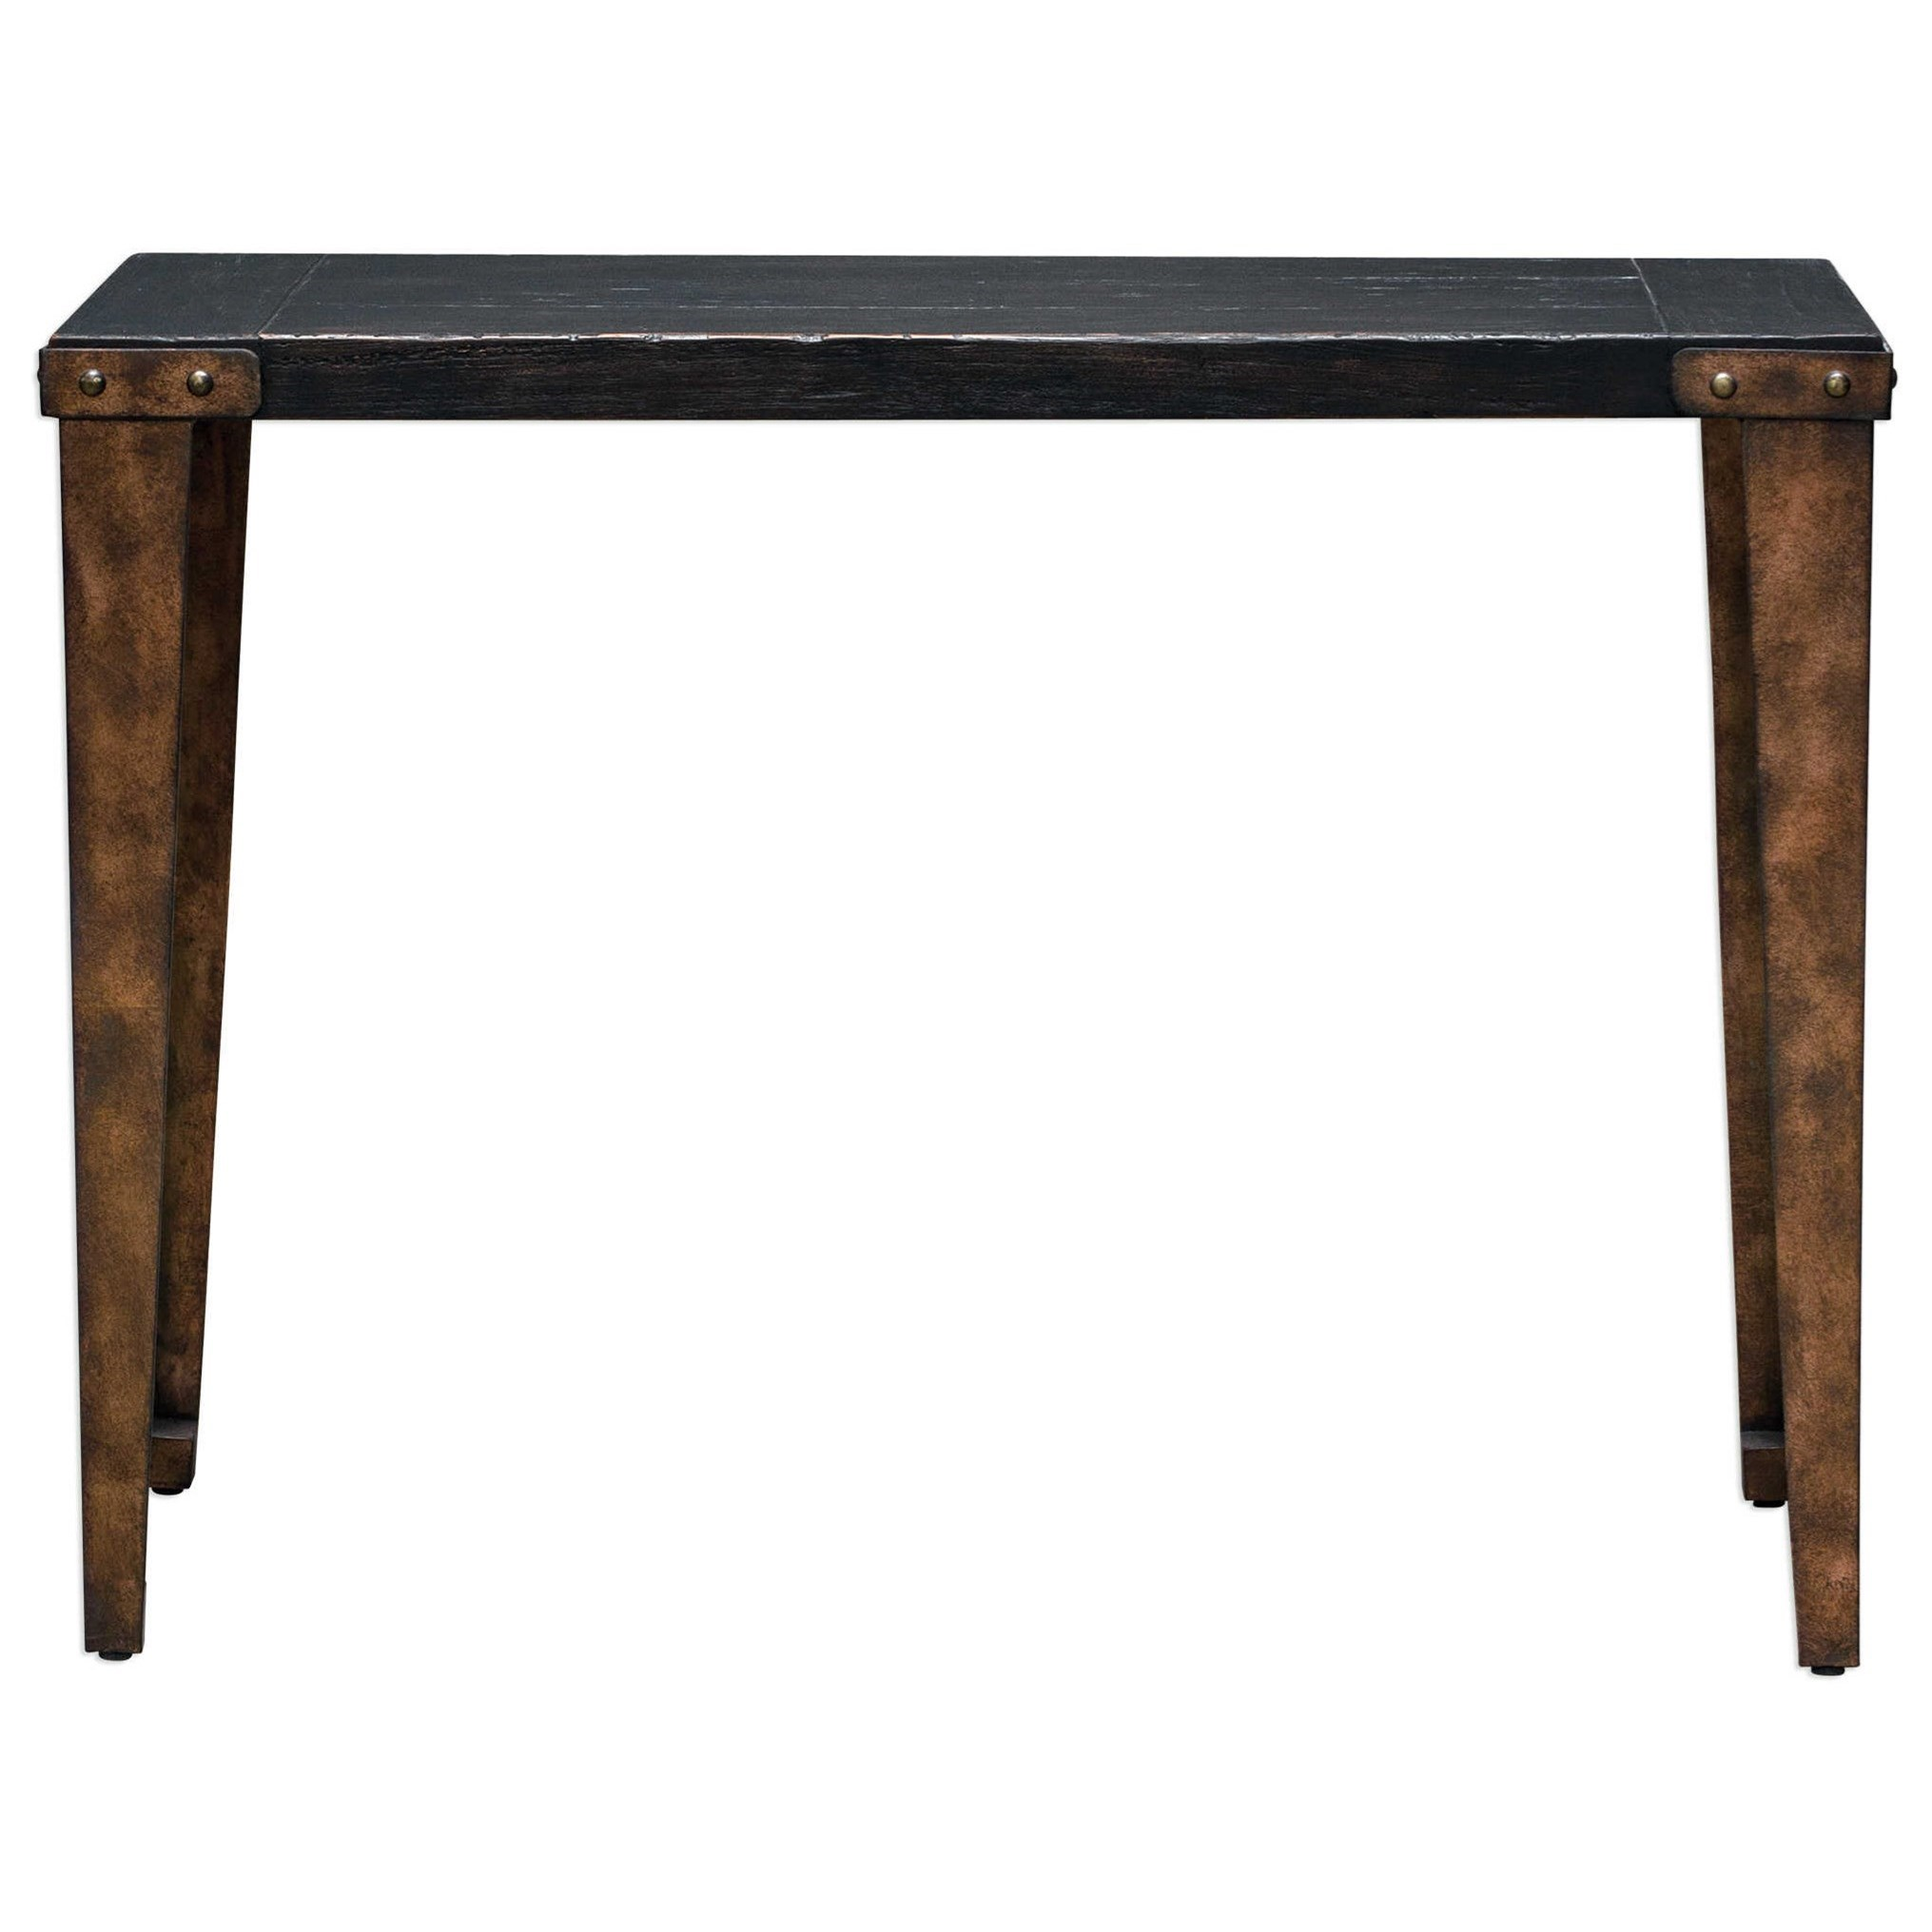 Uttermost Accent Furniture Atilo Worn Black Console Table - Item Number: 25760